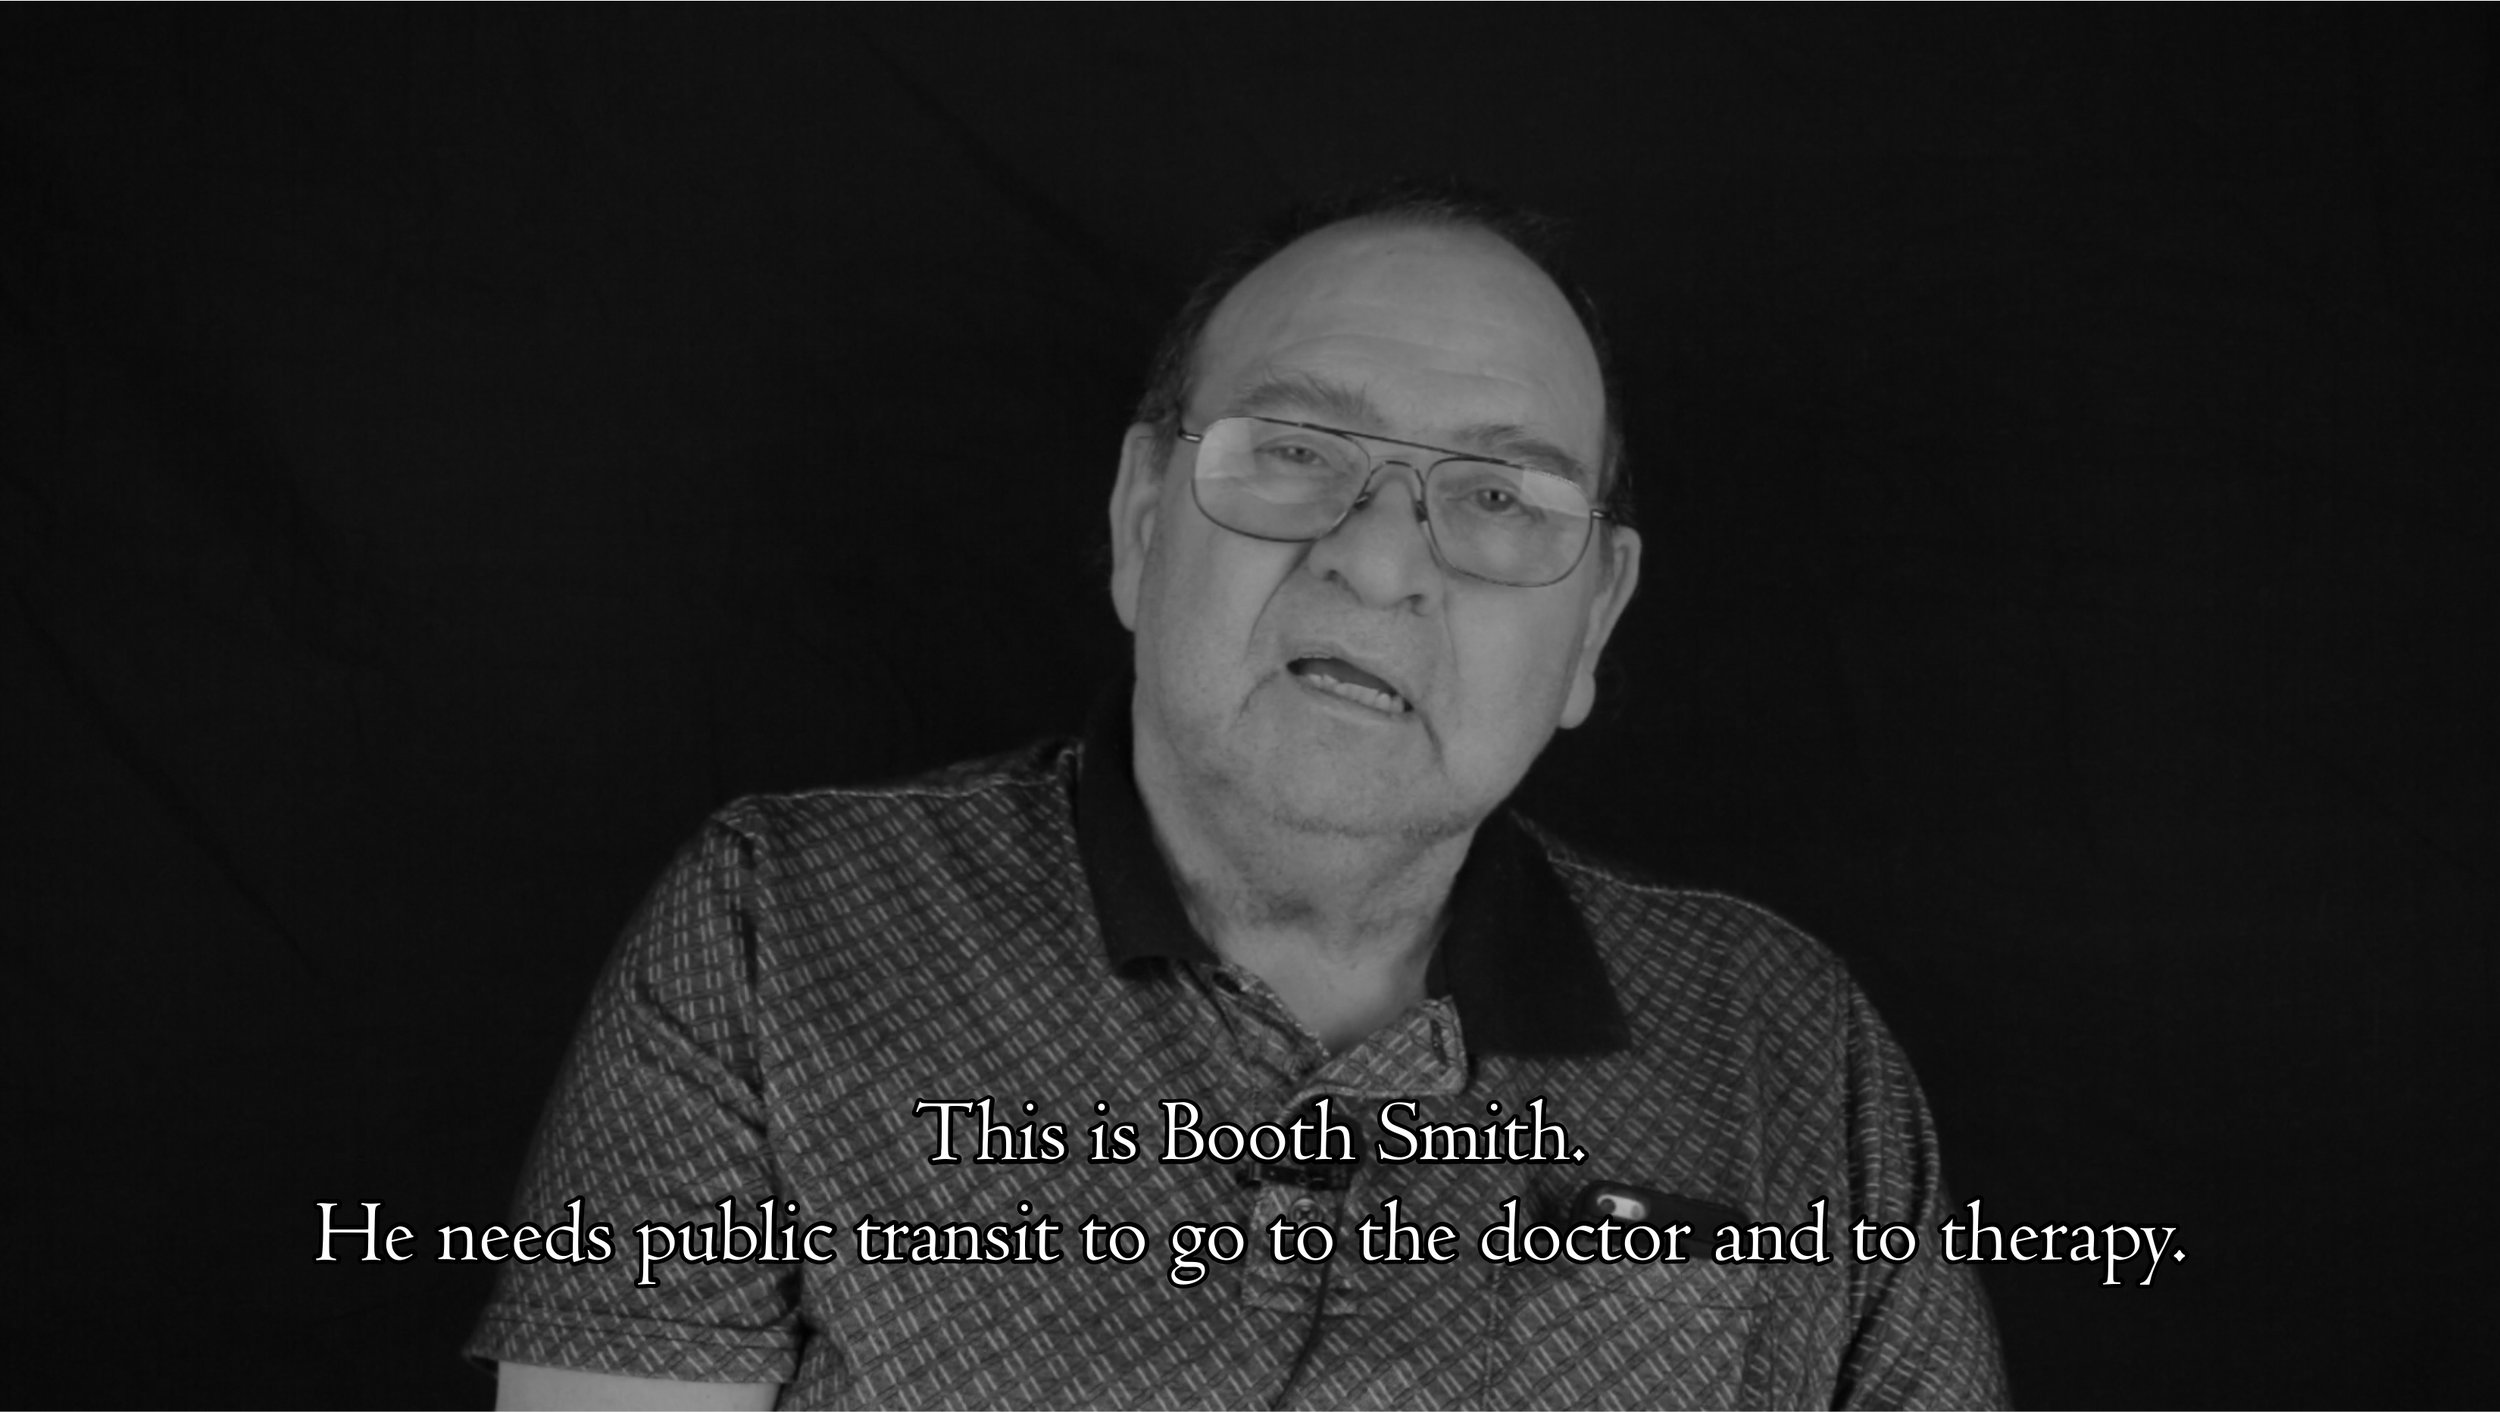 Booth Smith grayscale.jpg